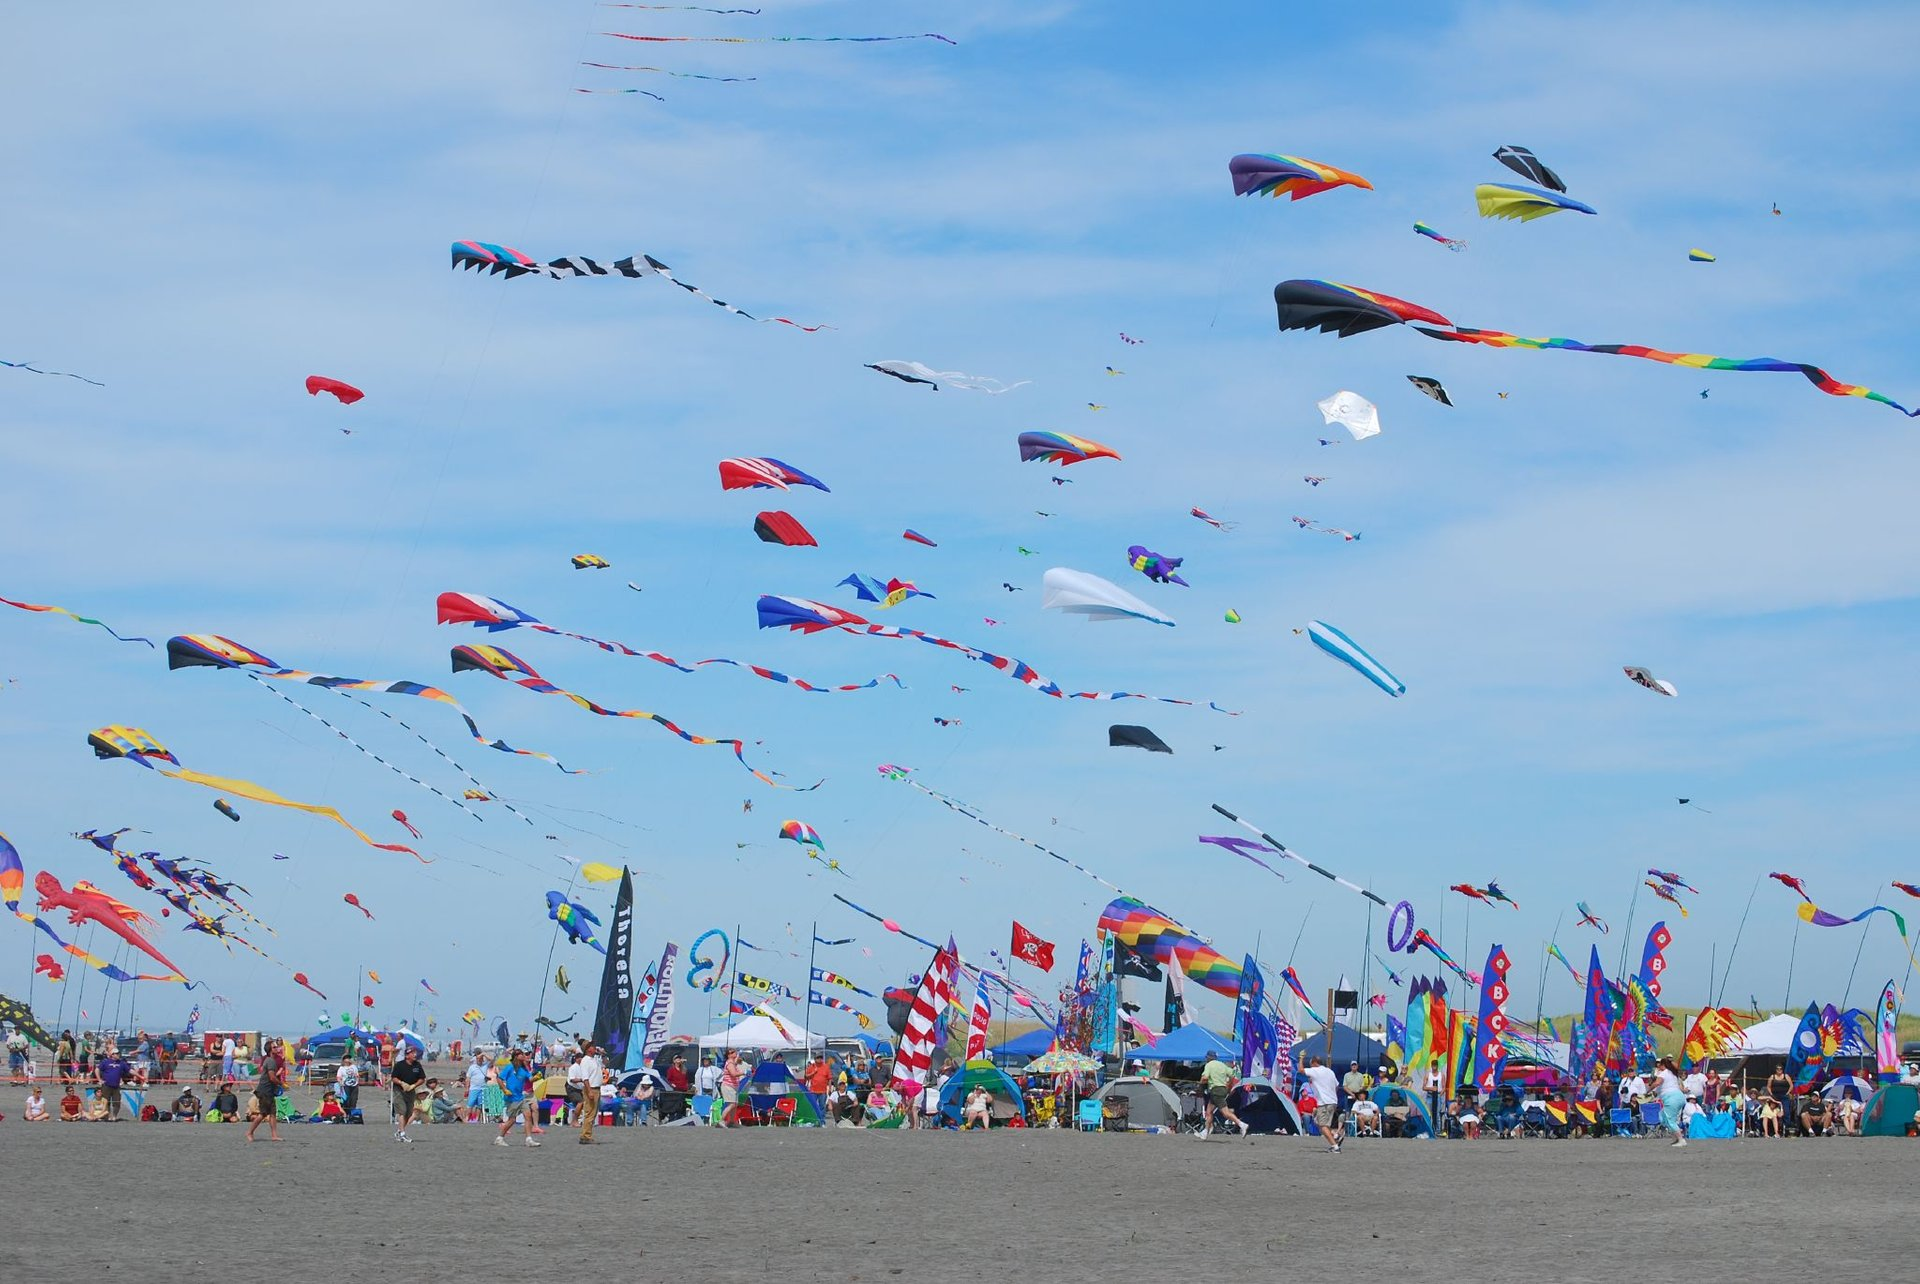 Best time for Washington State International Kite Festival in Seattle 2020